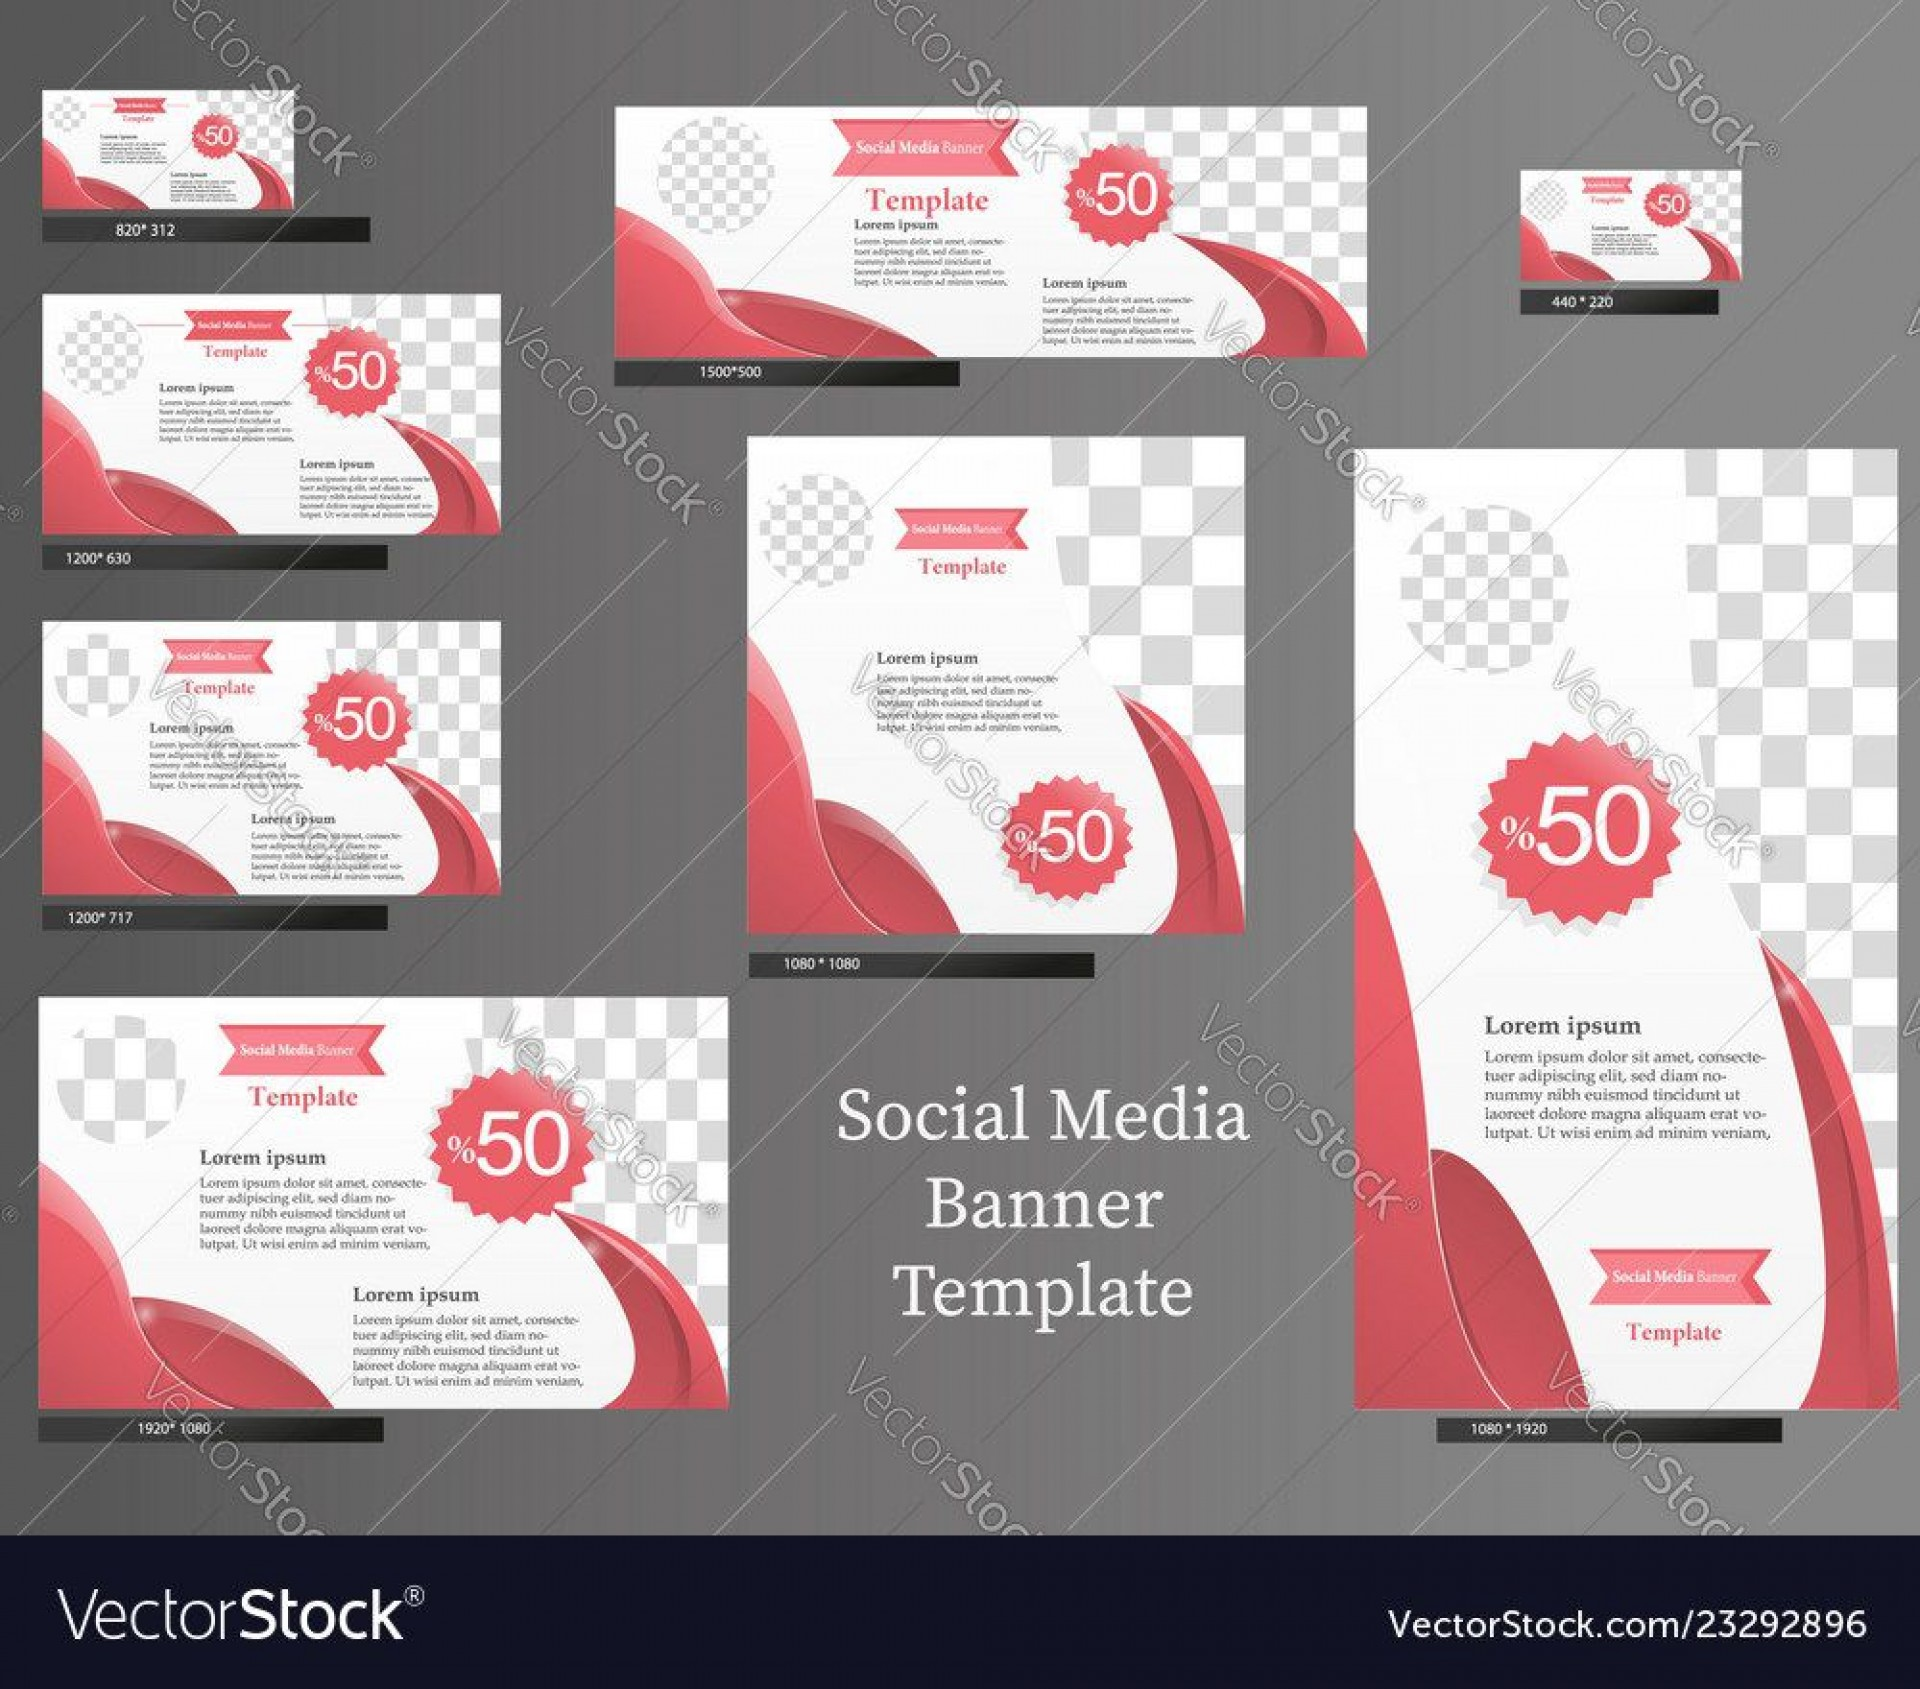 008 Staggering Social Media Banner Template Free Picture 1920